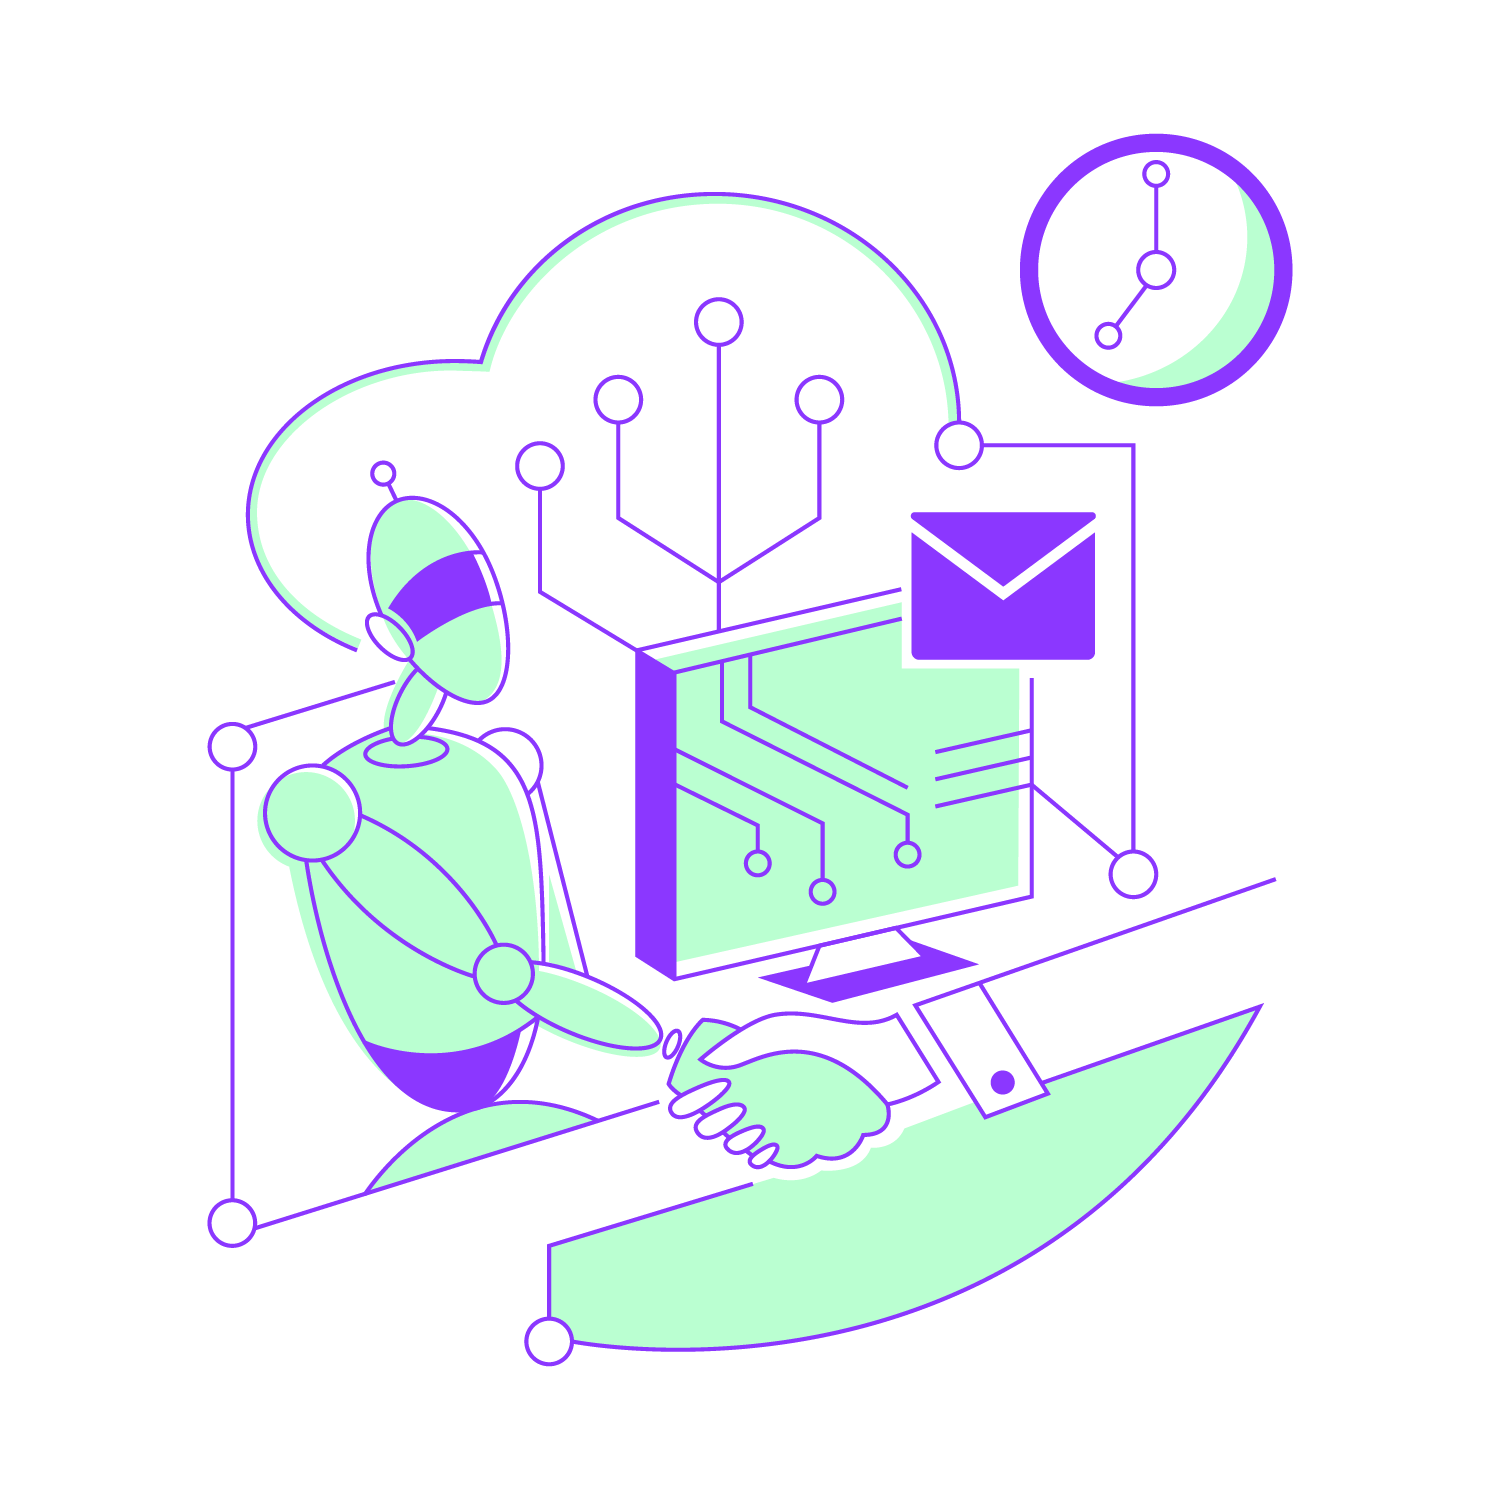 Illustration of a robot interacting with a human by a computer, to represent the cognitive bots working alongside a human workforce.